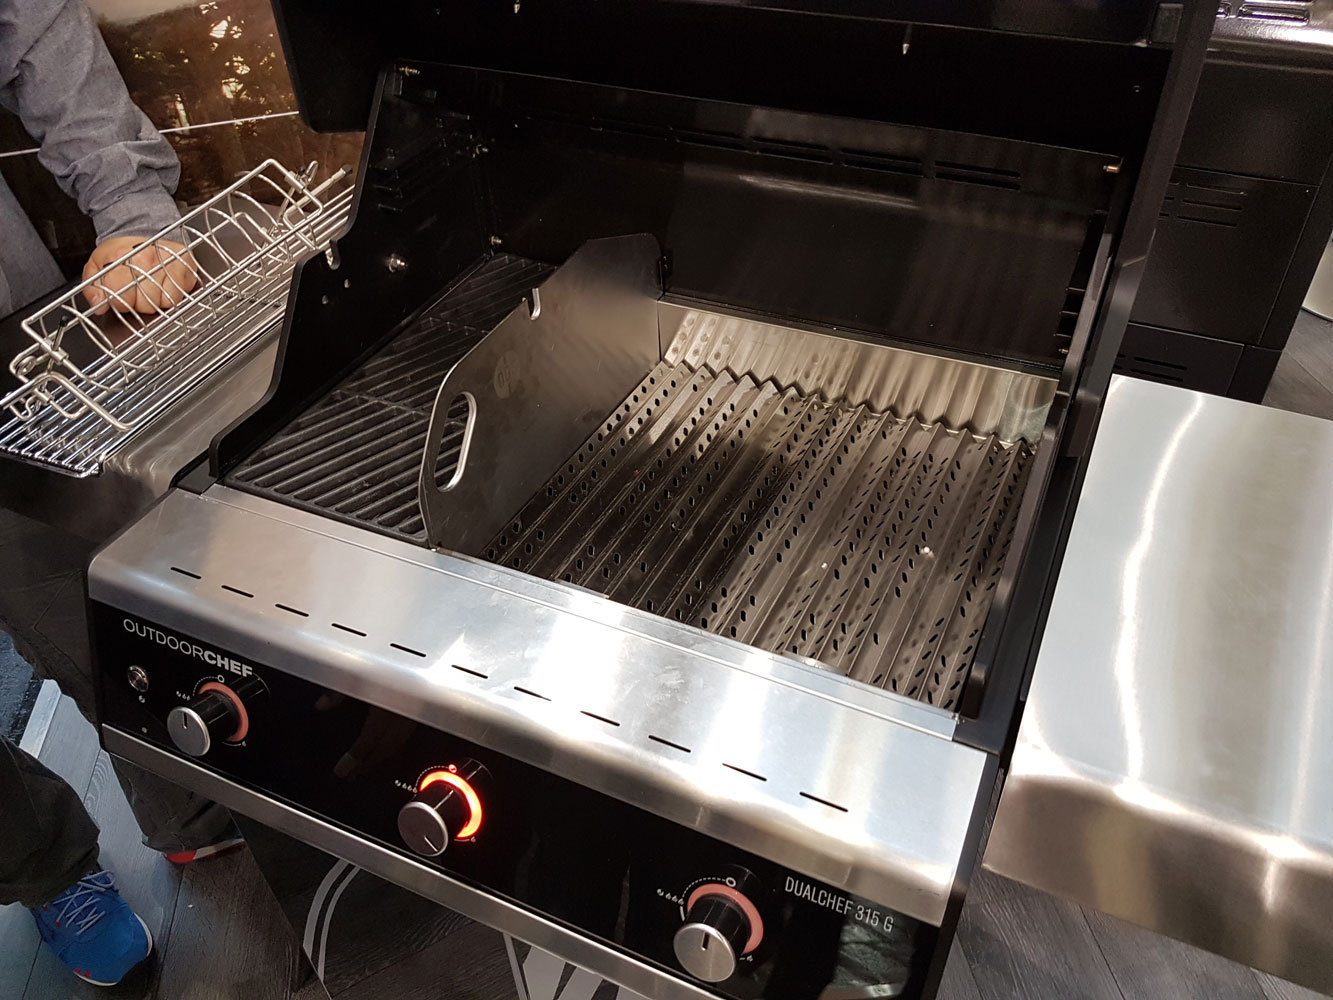 Dualchef 315 G Gas Bbq The Barbecue Store Spain